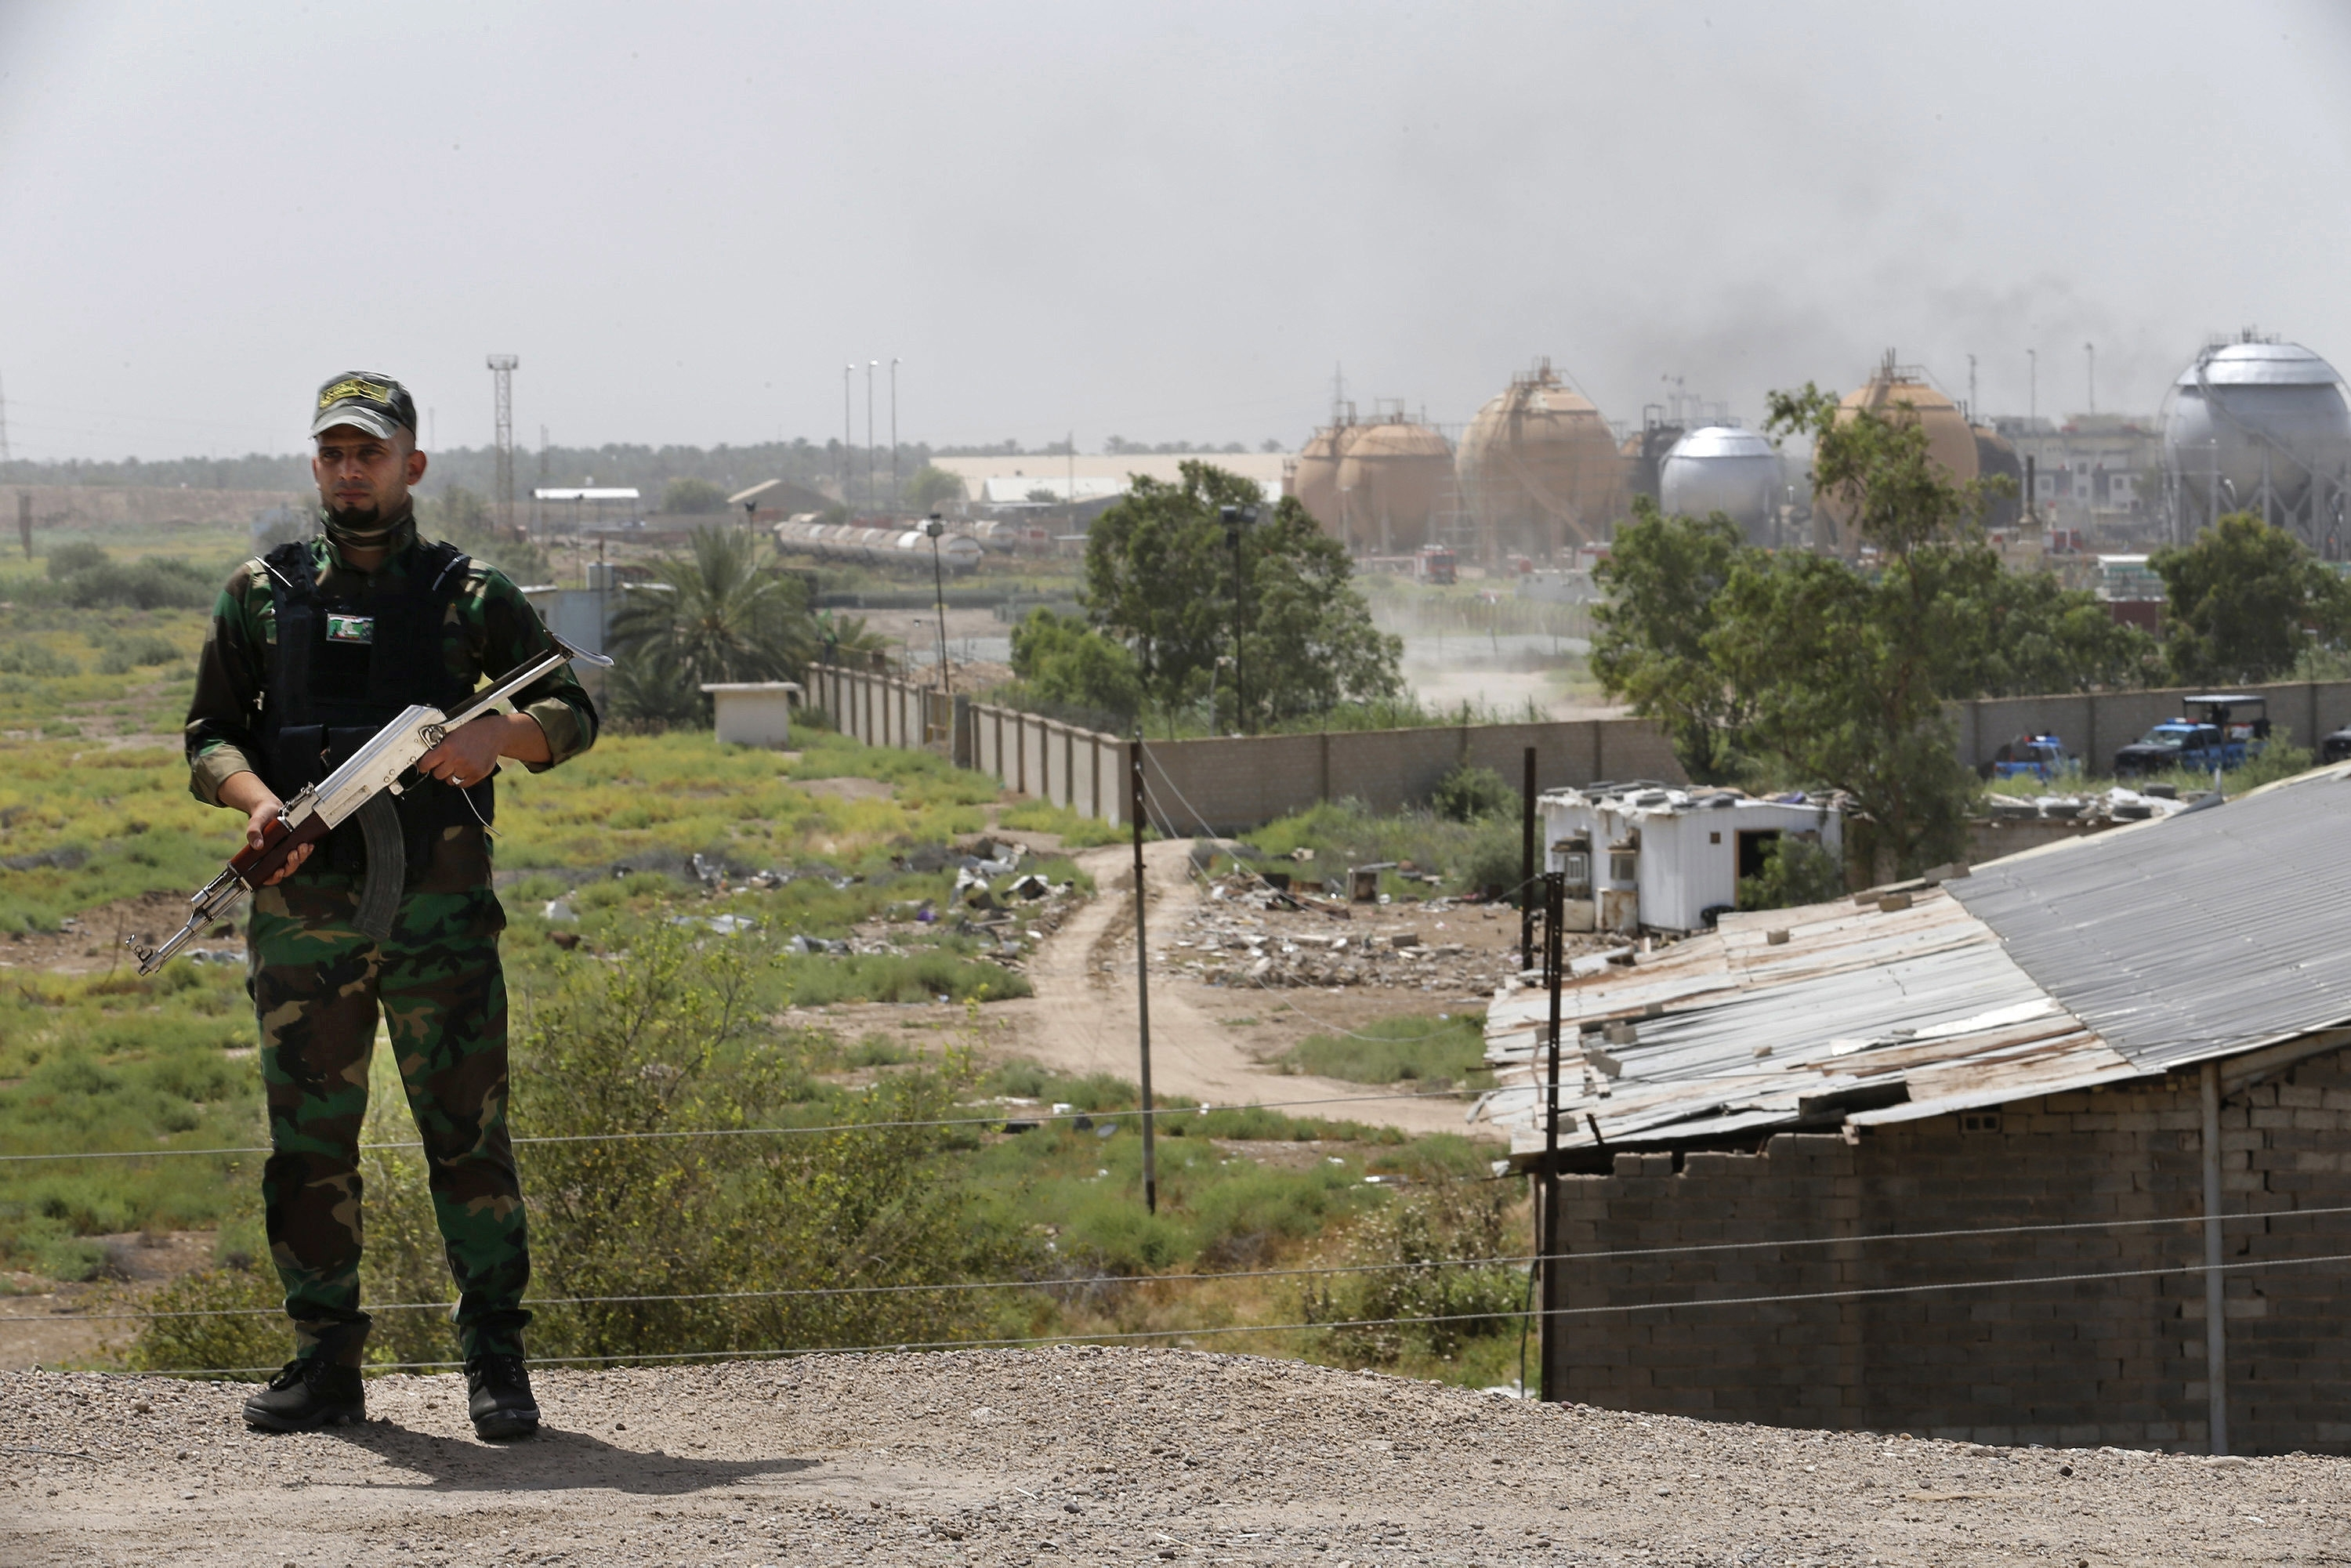 A federal police man stands guard outside the natural gas plant in Taji, 12 miles (20 kilometers) north of Baghdad, Iraq, Sunday, May 15, 2016. The Islamic State group launched a coordinated assault Sunday on a natural gas plant north of the capital that killed more than a dozen people, according to Iraqi officials.